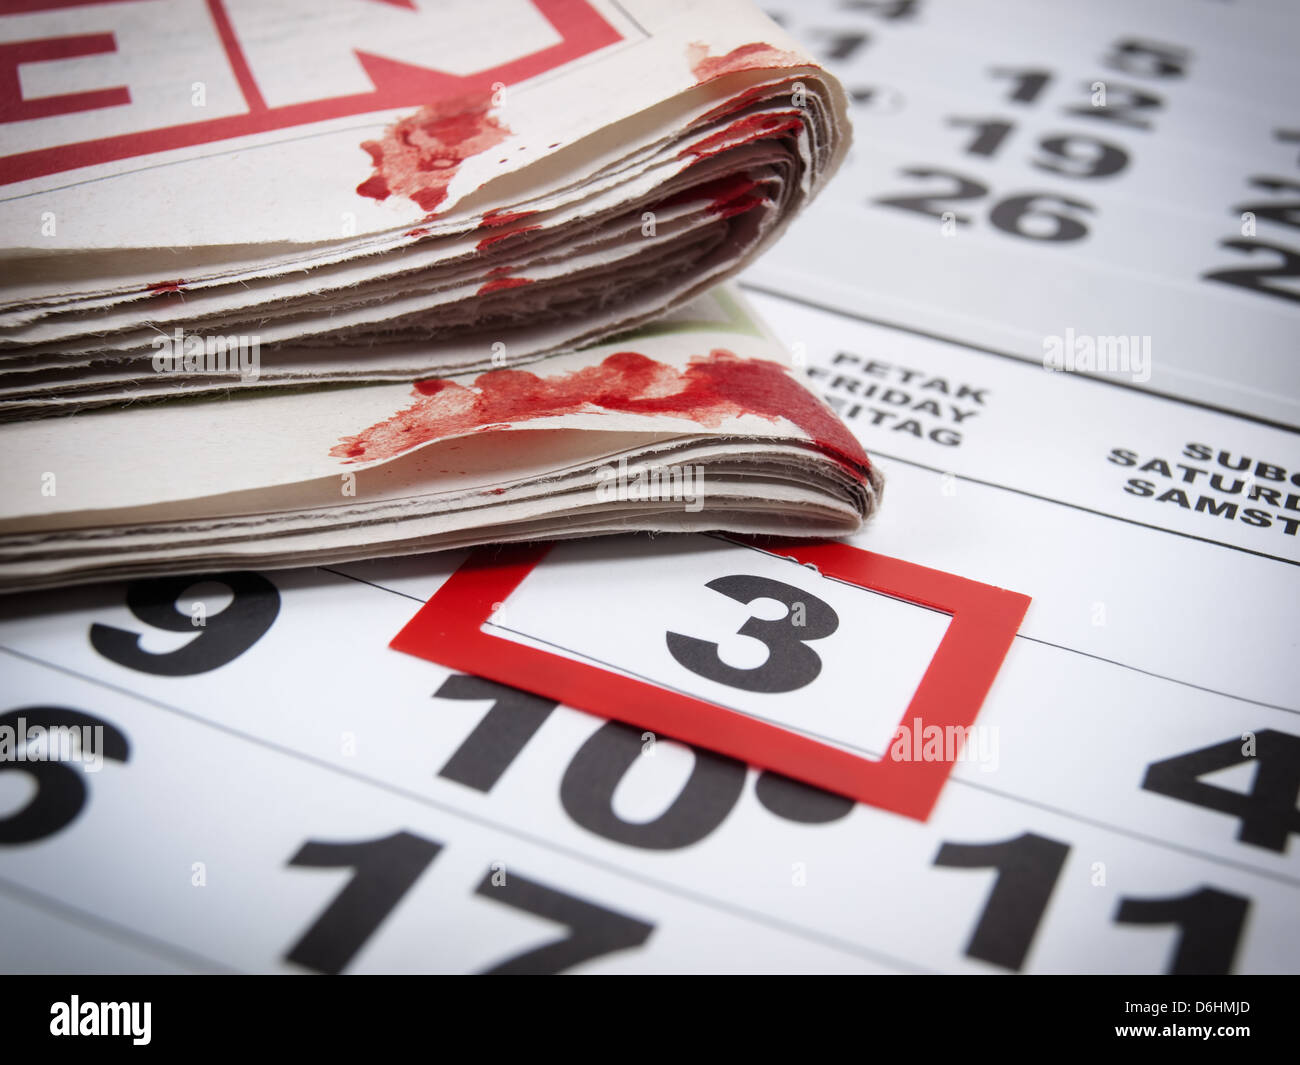 Conceptual image about an international holiday known as World press Day. Stock Photo